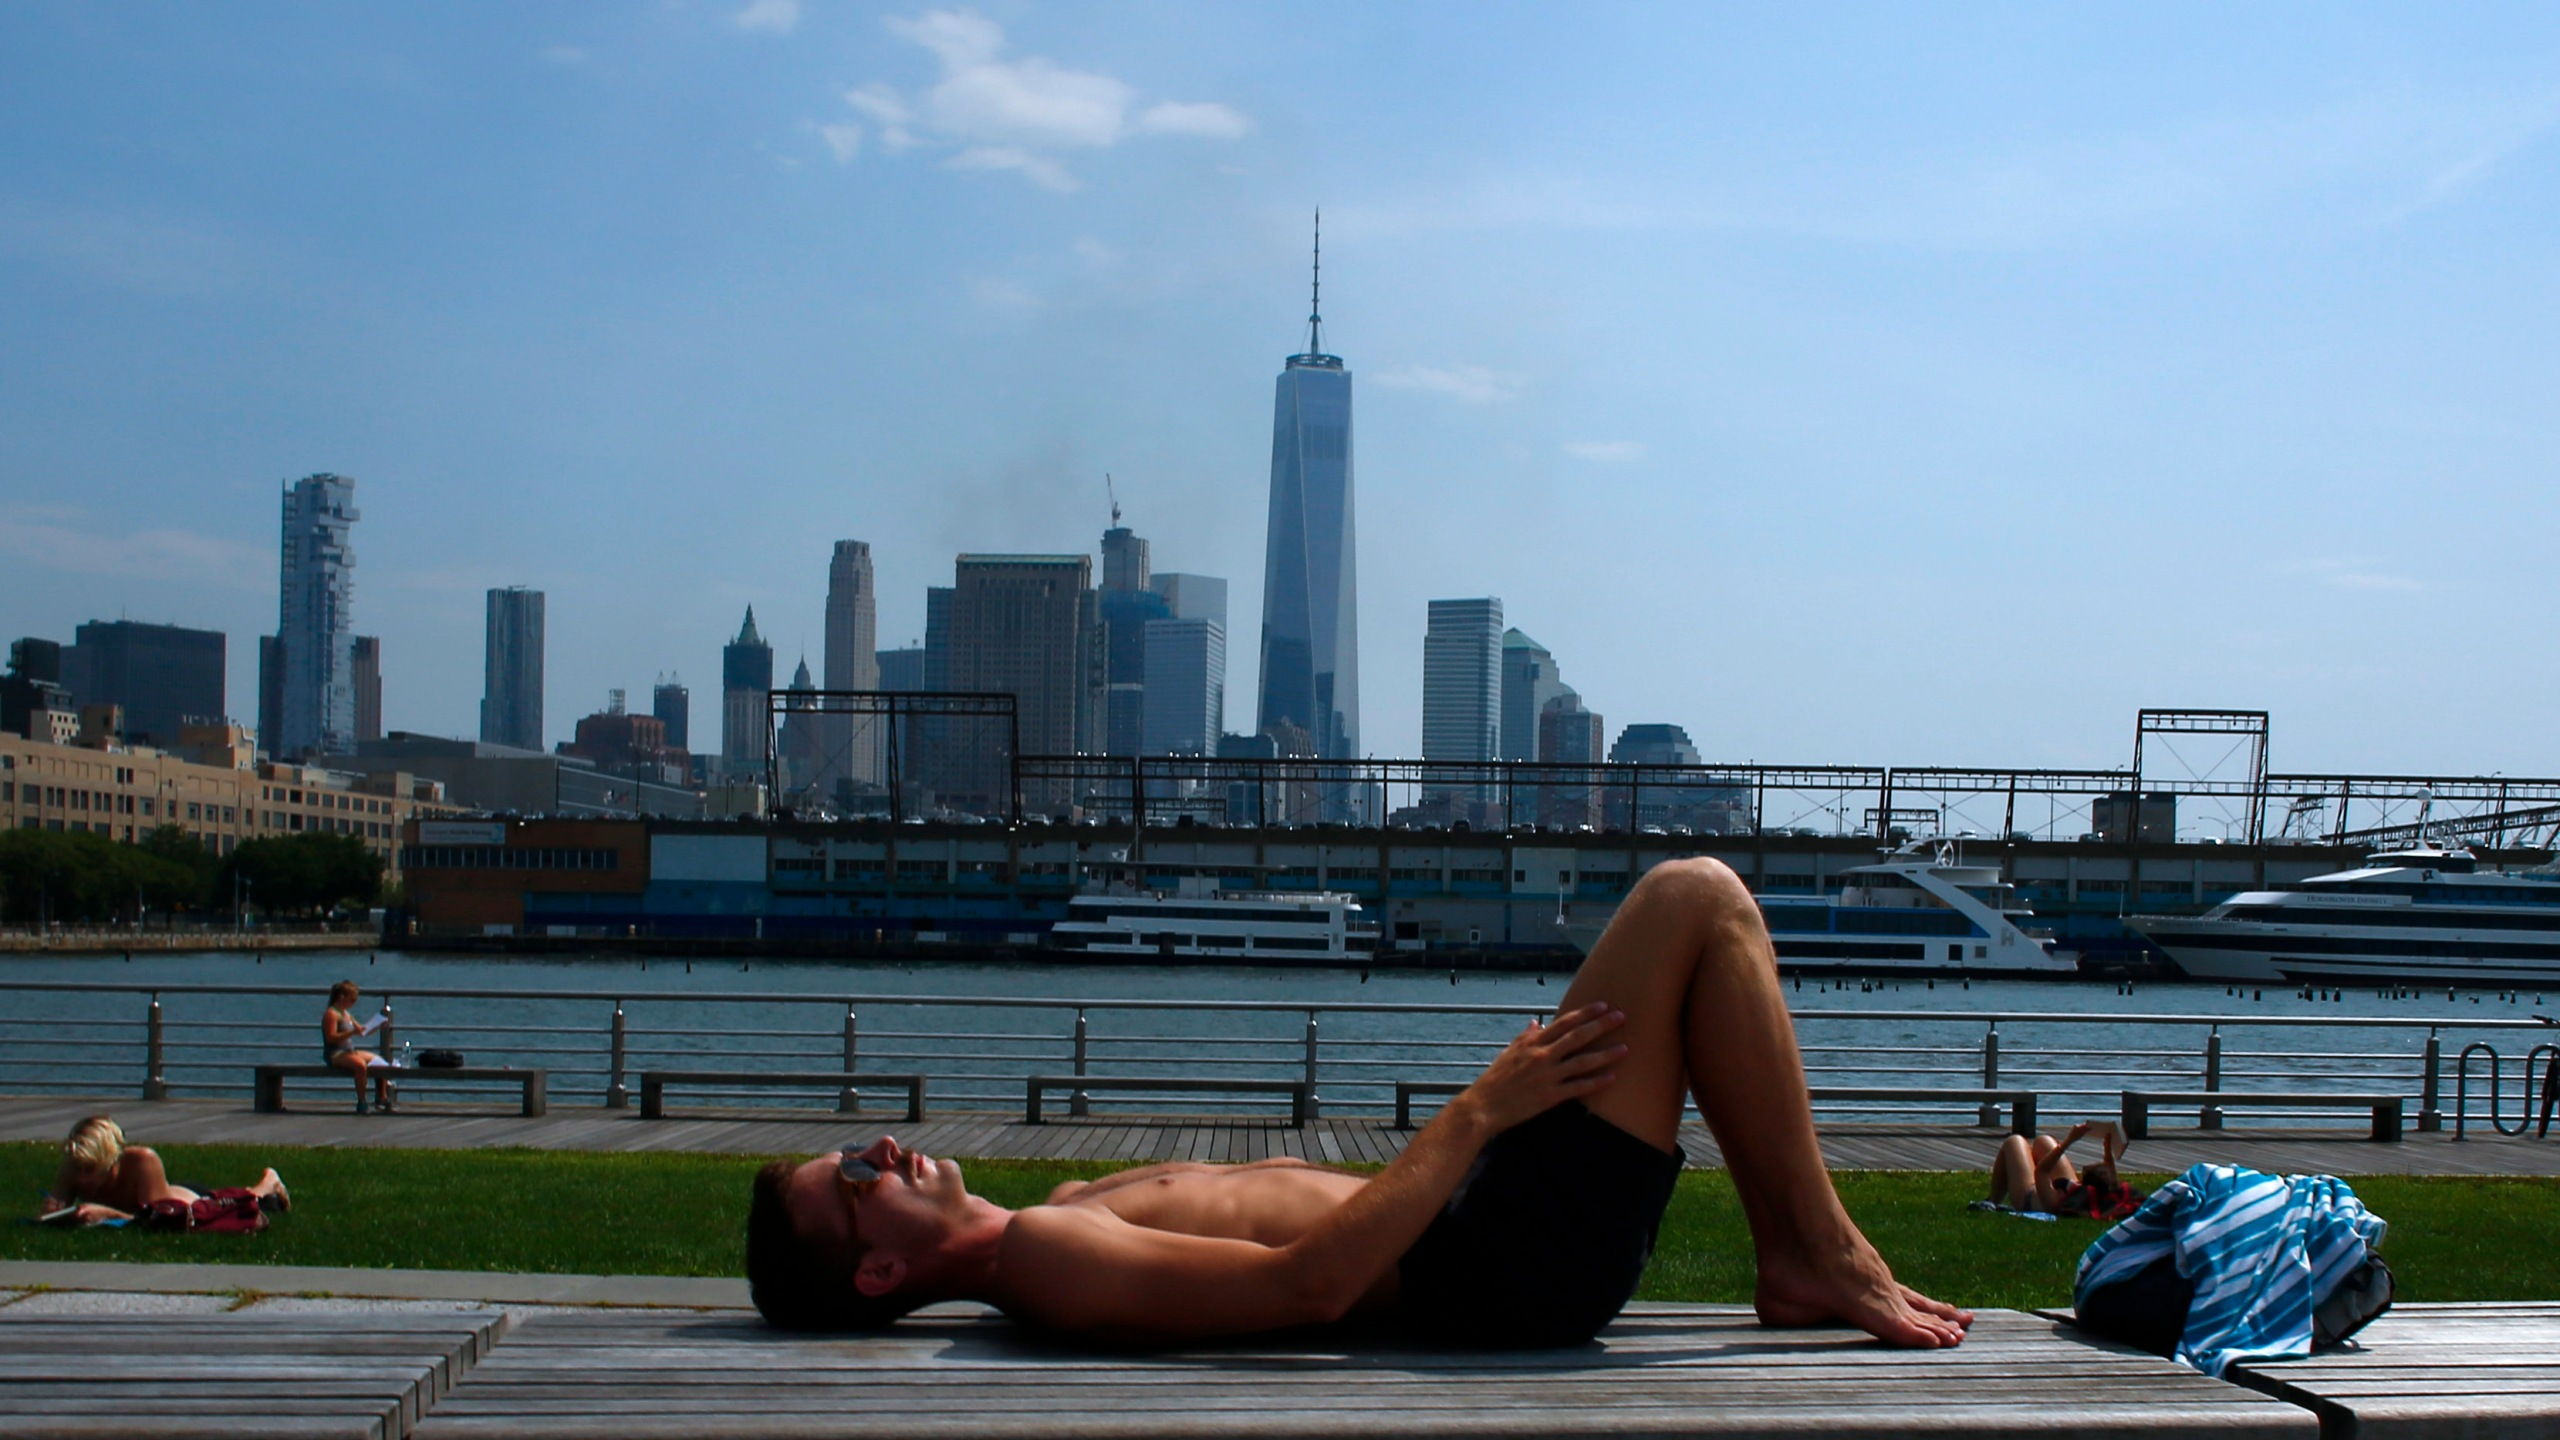 Heat wave ahead: New Yorkers warned to prepare for sweltering temps